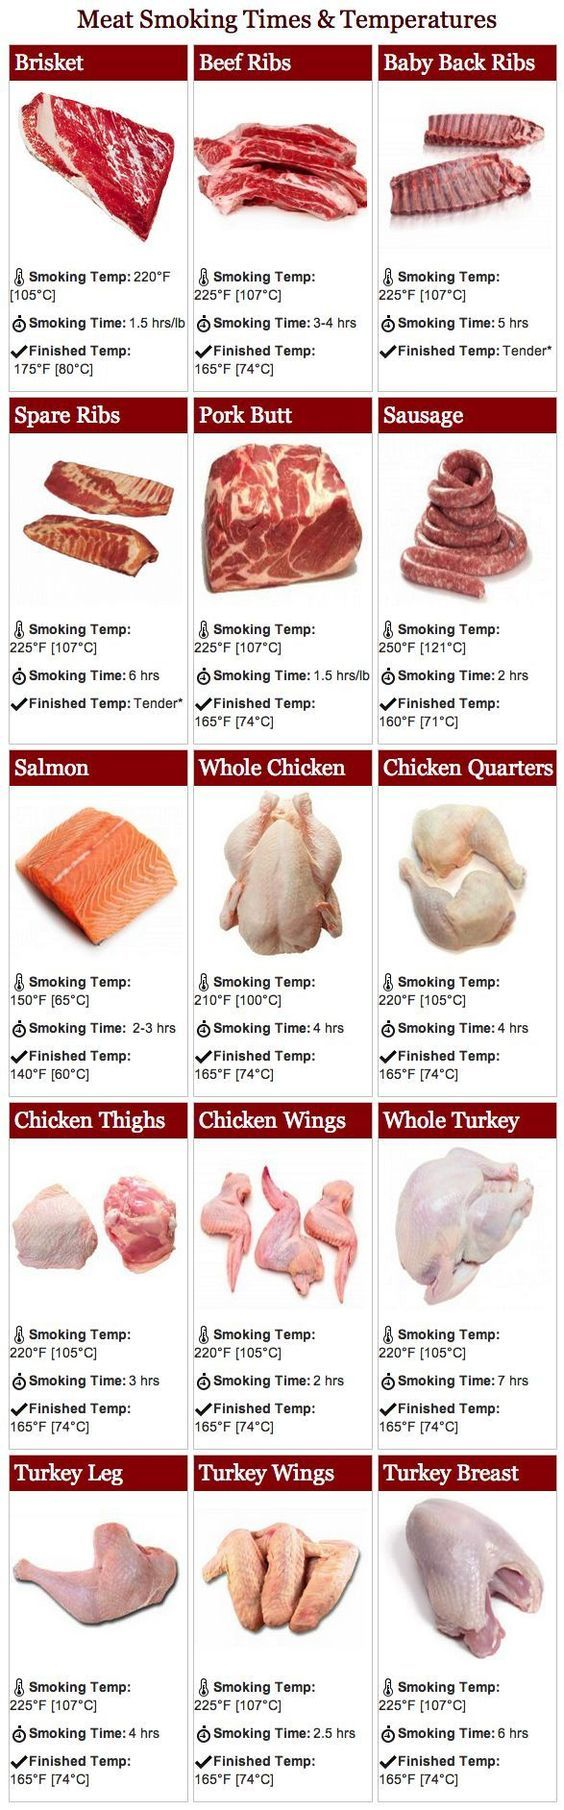 Cheat sheet on meat smoking times and temperatures from Bradley Smoker! Maybe one day I will attempt this on someone's smoker.: